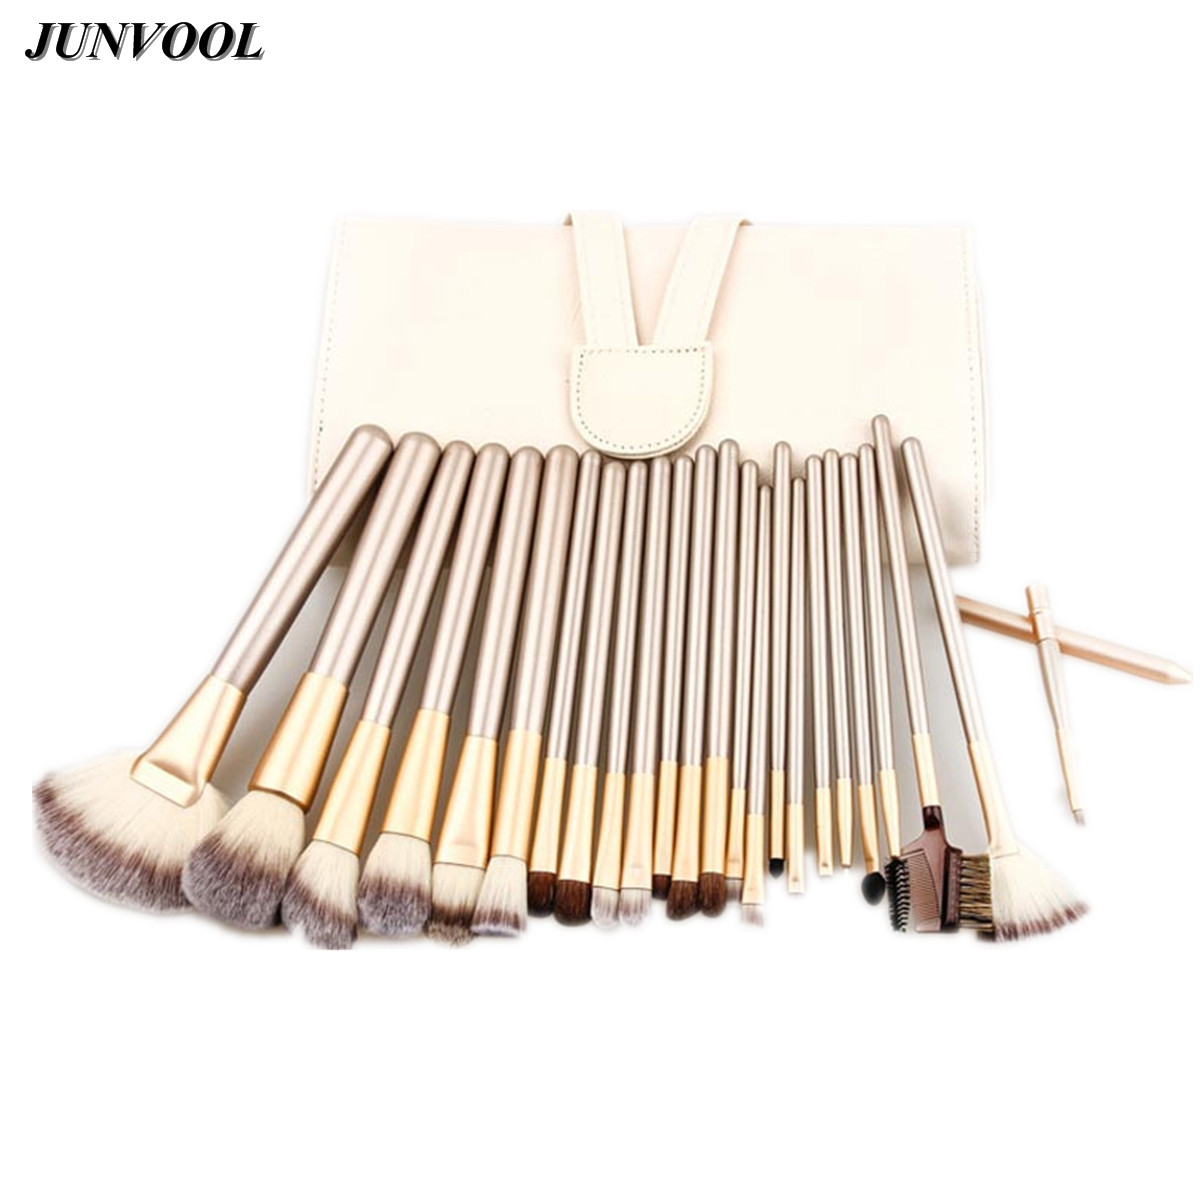 Gold 24pcs Brown Makeup Brushes Professional Powder Foundation Brush Set Cosmetic Make Up Tool Blush Brush with Bag High Quality high quality 18pcs set cosmetic makeup brush foundation powder eyeliner professional brushes tool with roll up leather case